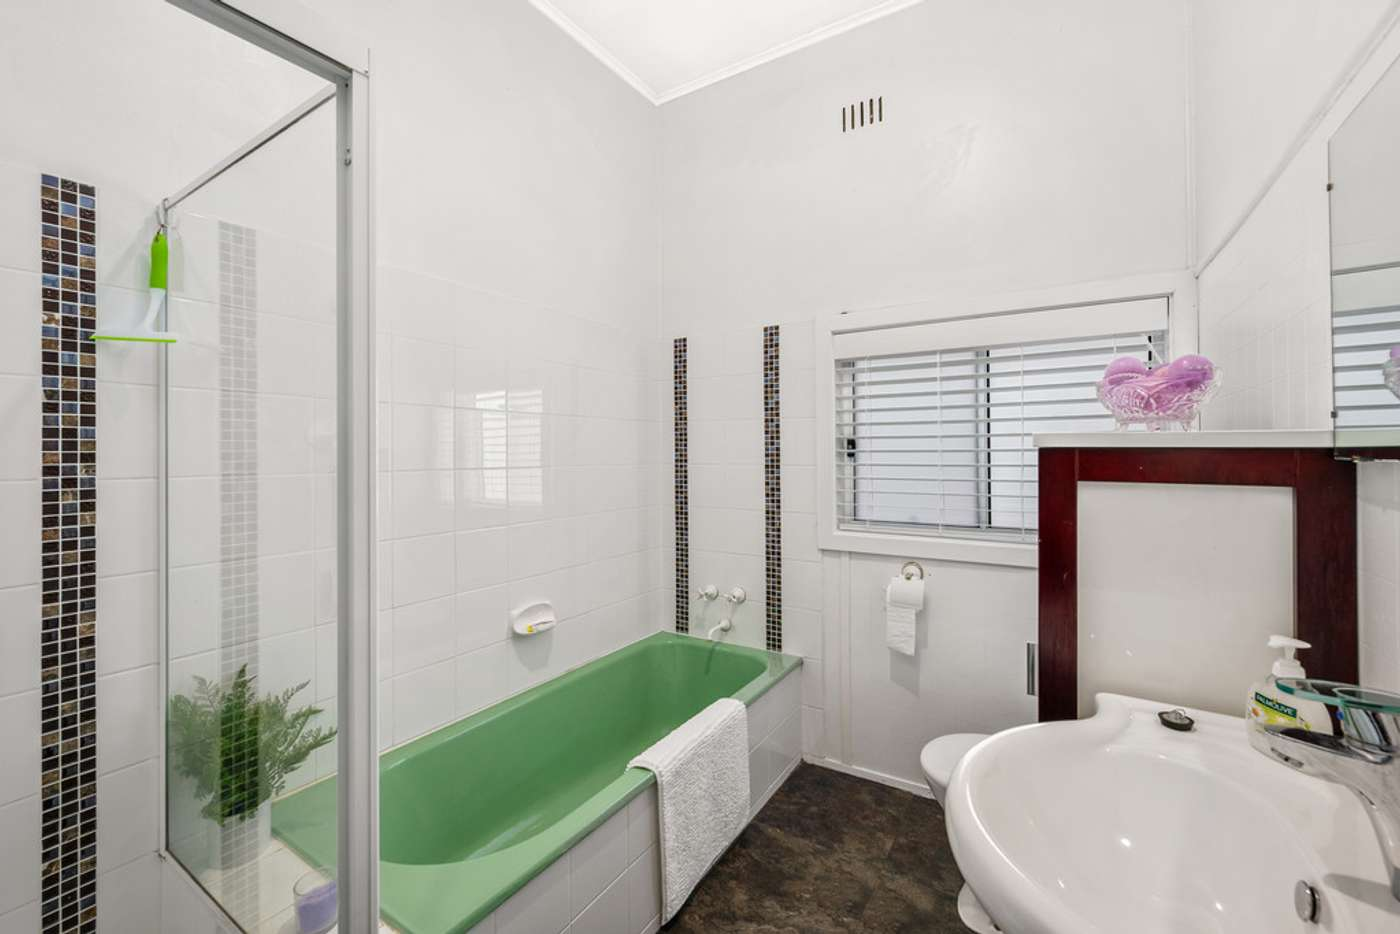 Seventh view of Homely house listing, 15 Beach Street, Swansea NSW 2281